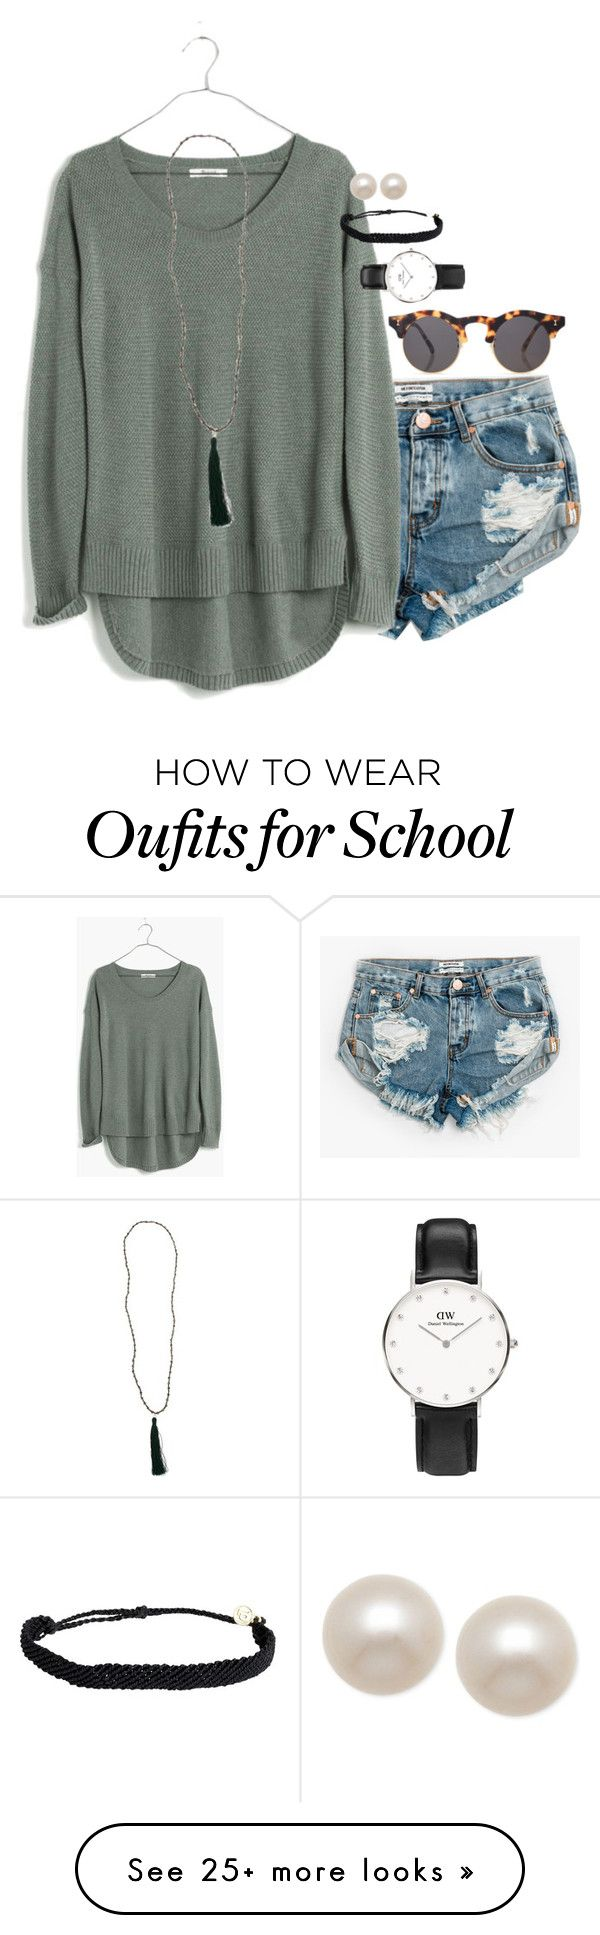 """""""I might be going to public school!! but i would have to wear a uniform:((("""" by smbprep on Polyvore featuring One Teaspoon, Madewell, New Directions, Illesteva, Pura Vida, Honora and Daniel Wellington"""